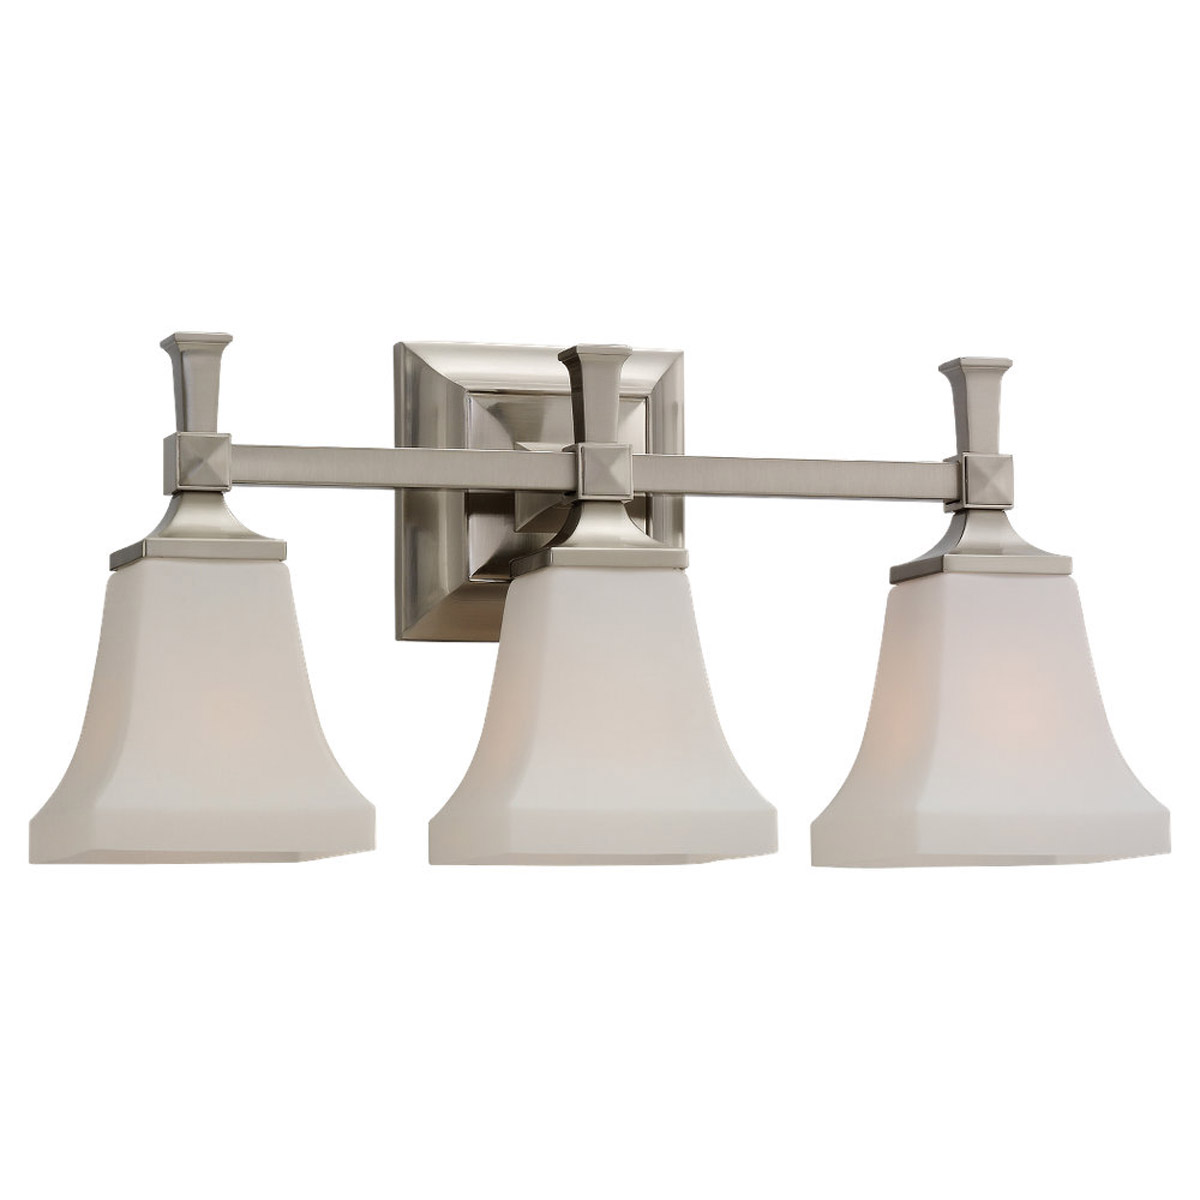 Sea Gull Lighting Melody 3 Light Bath Vanity in Brushed Nickel 44707-962 photo